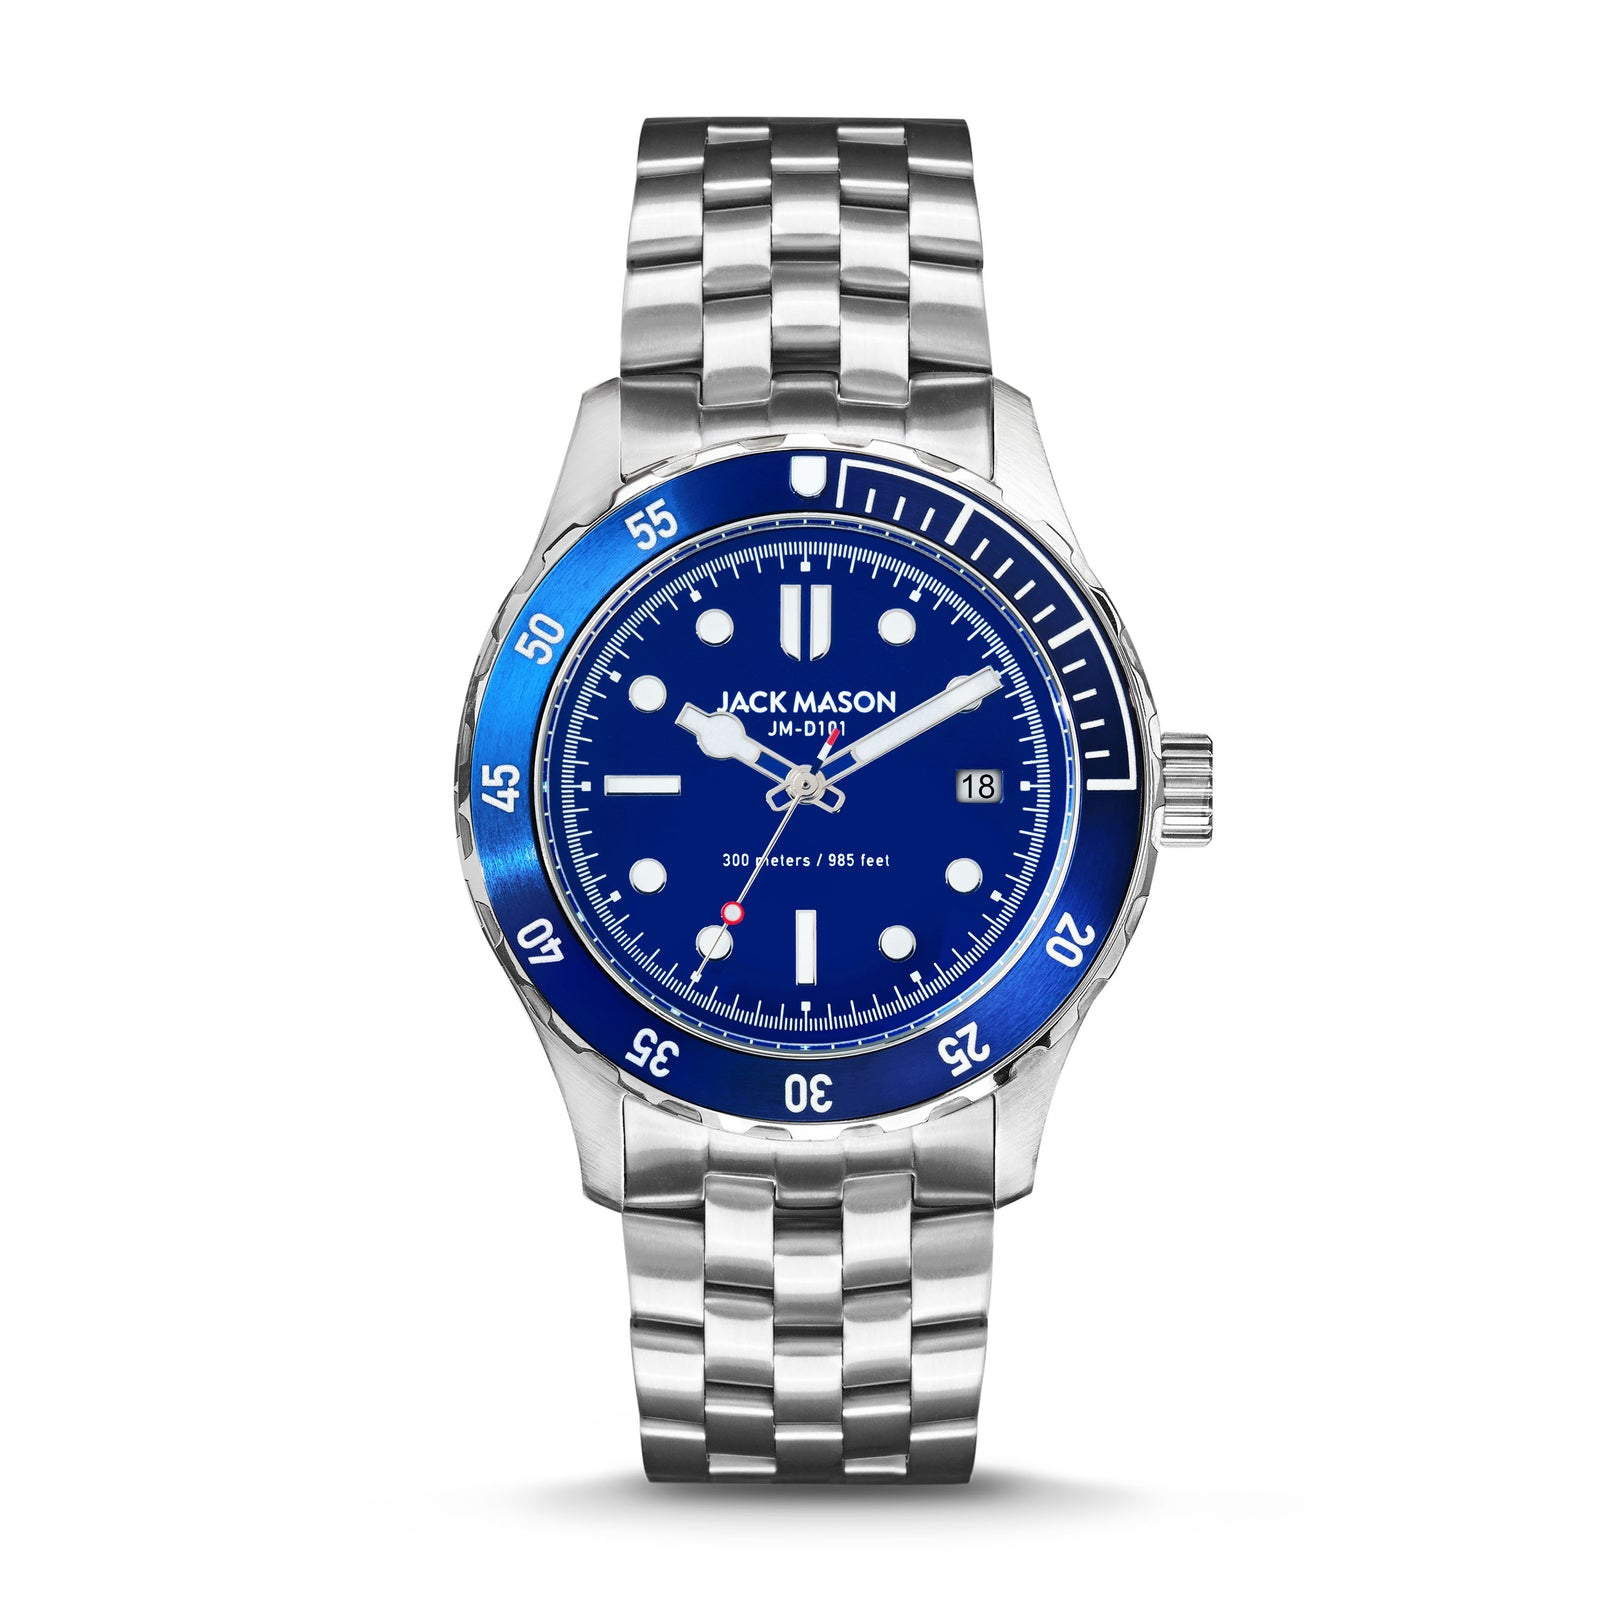 men's blue diving watch with bracelet style watch band